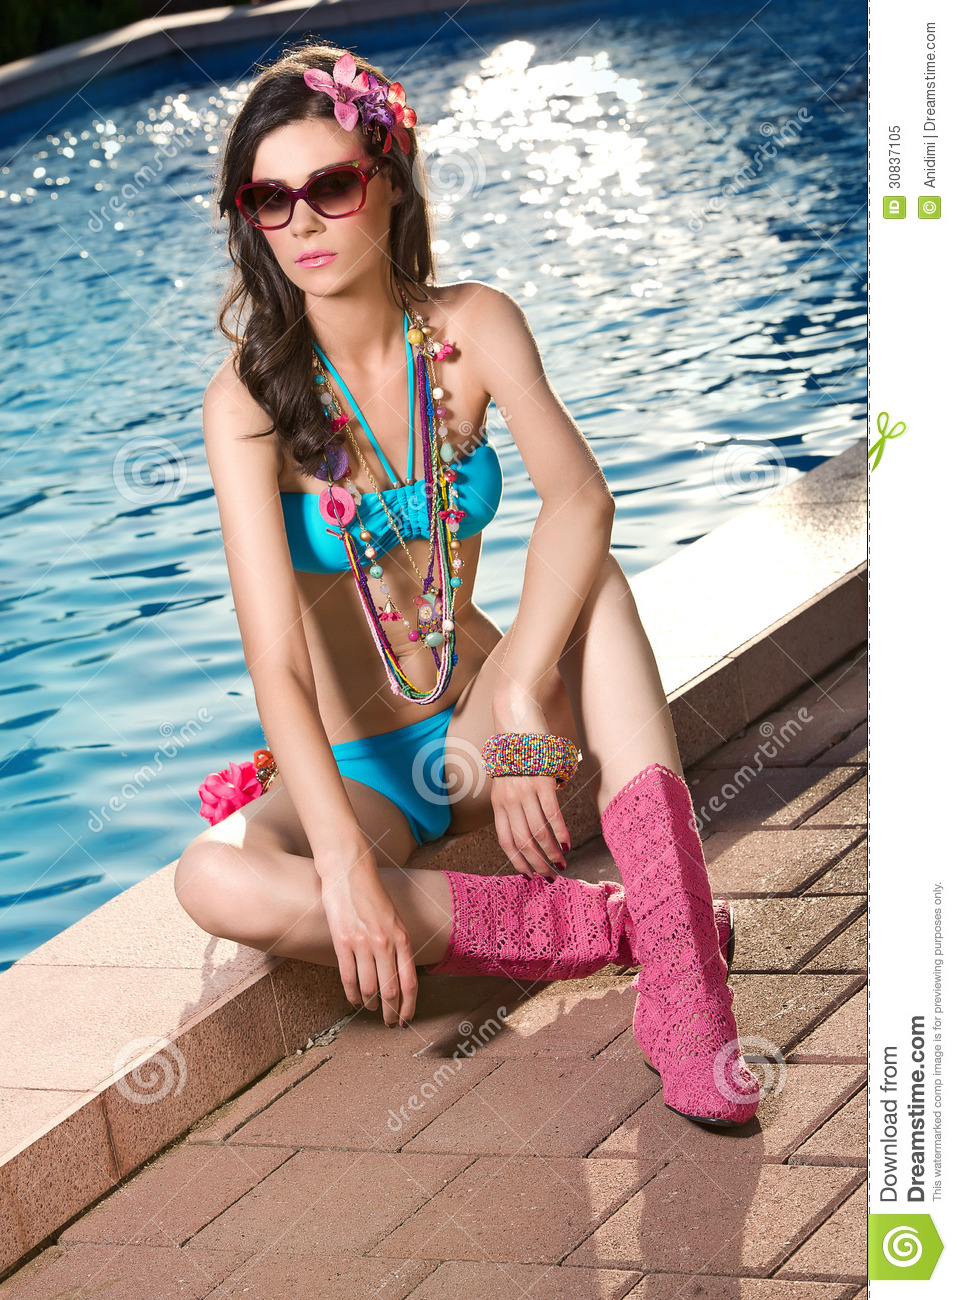 Attractivel woman posing by the pool